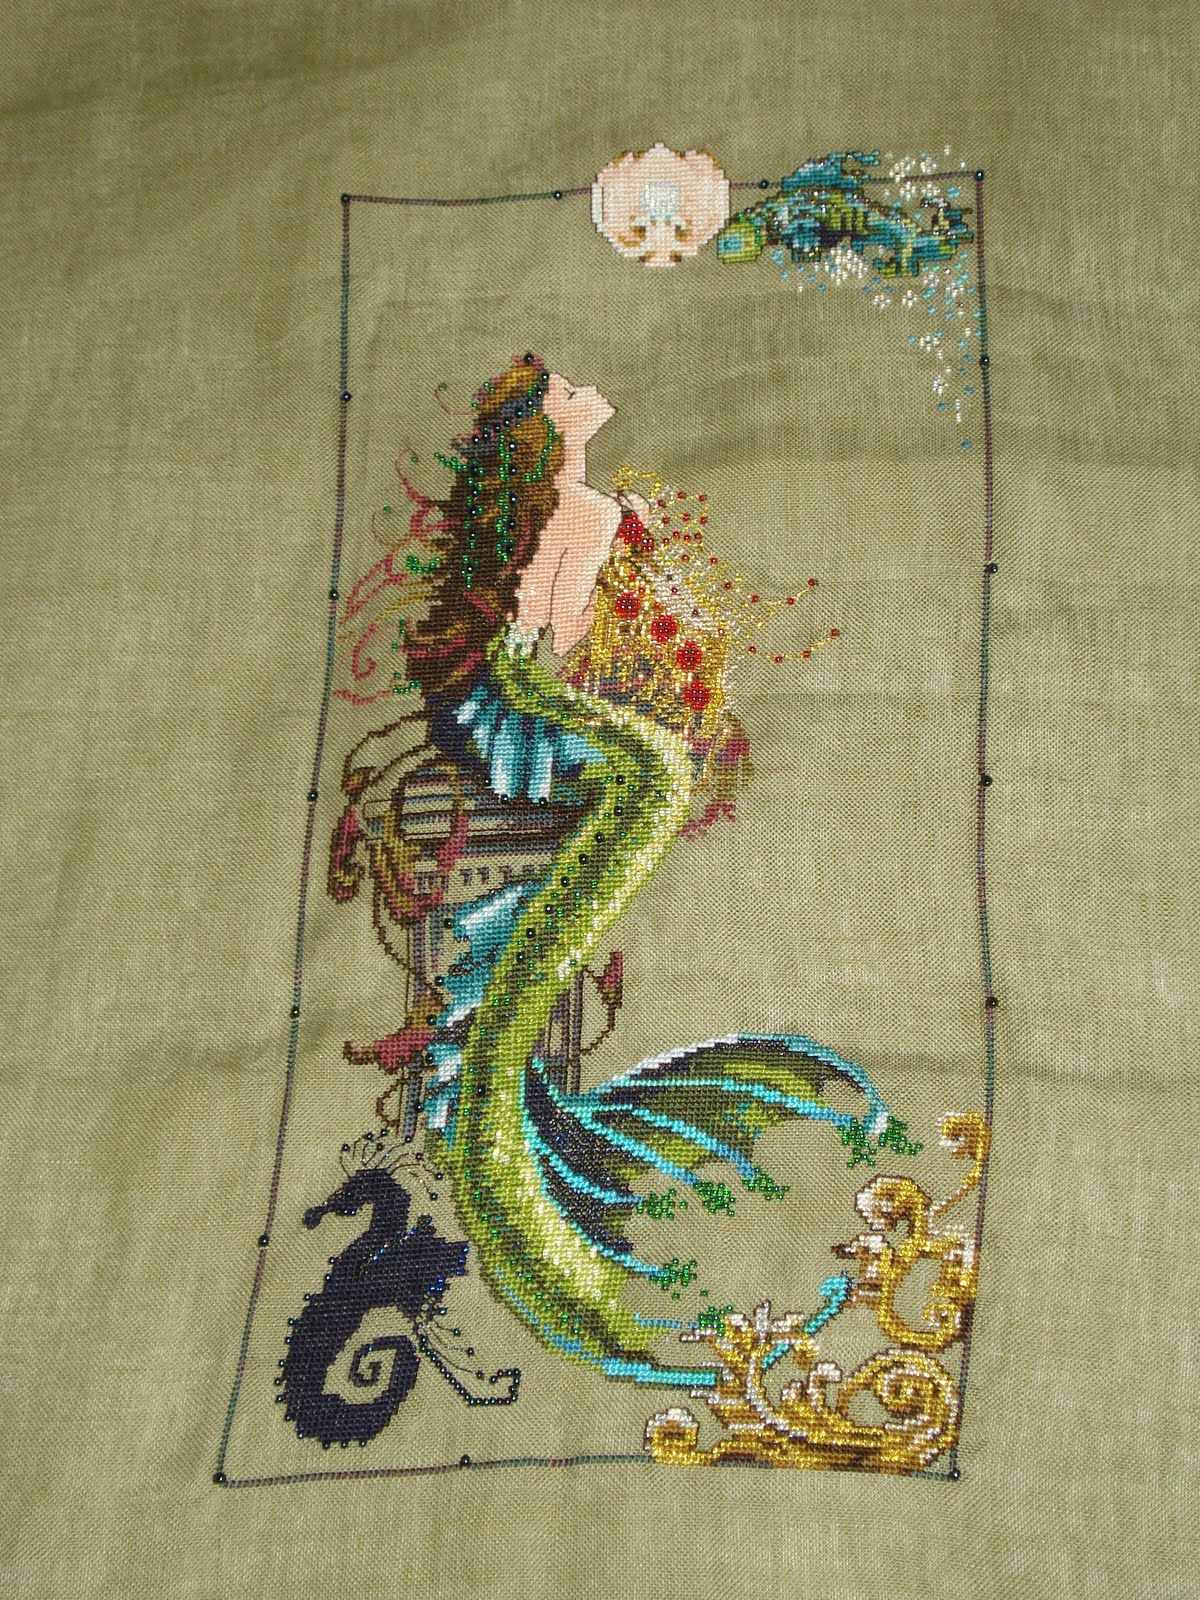 Mermaid embroidery cross stitch arts and crafts for Mermaid arts and crafts